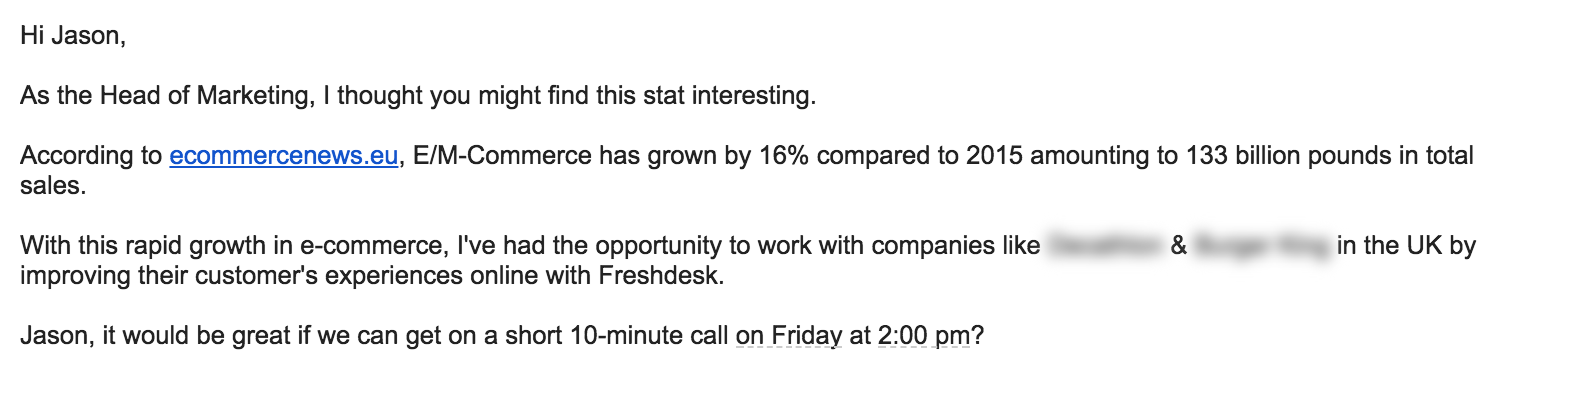 Share Helpful Industry Information - cold email example